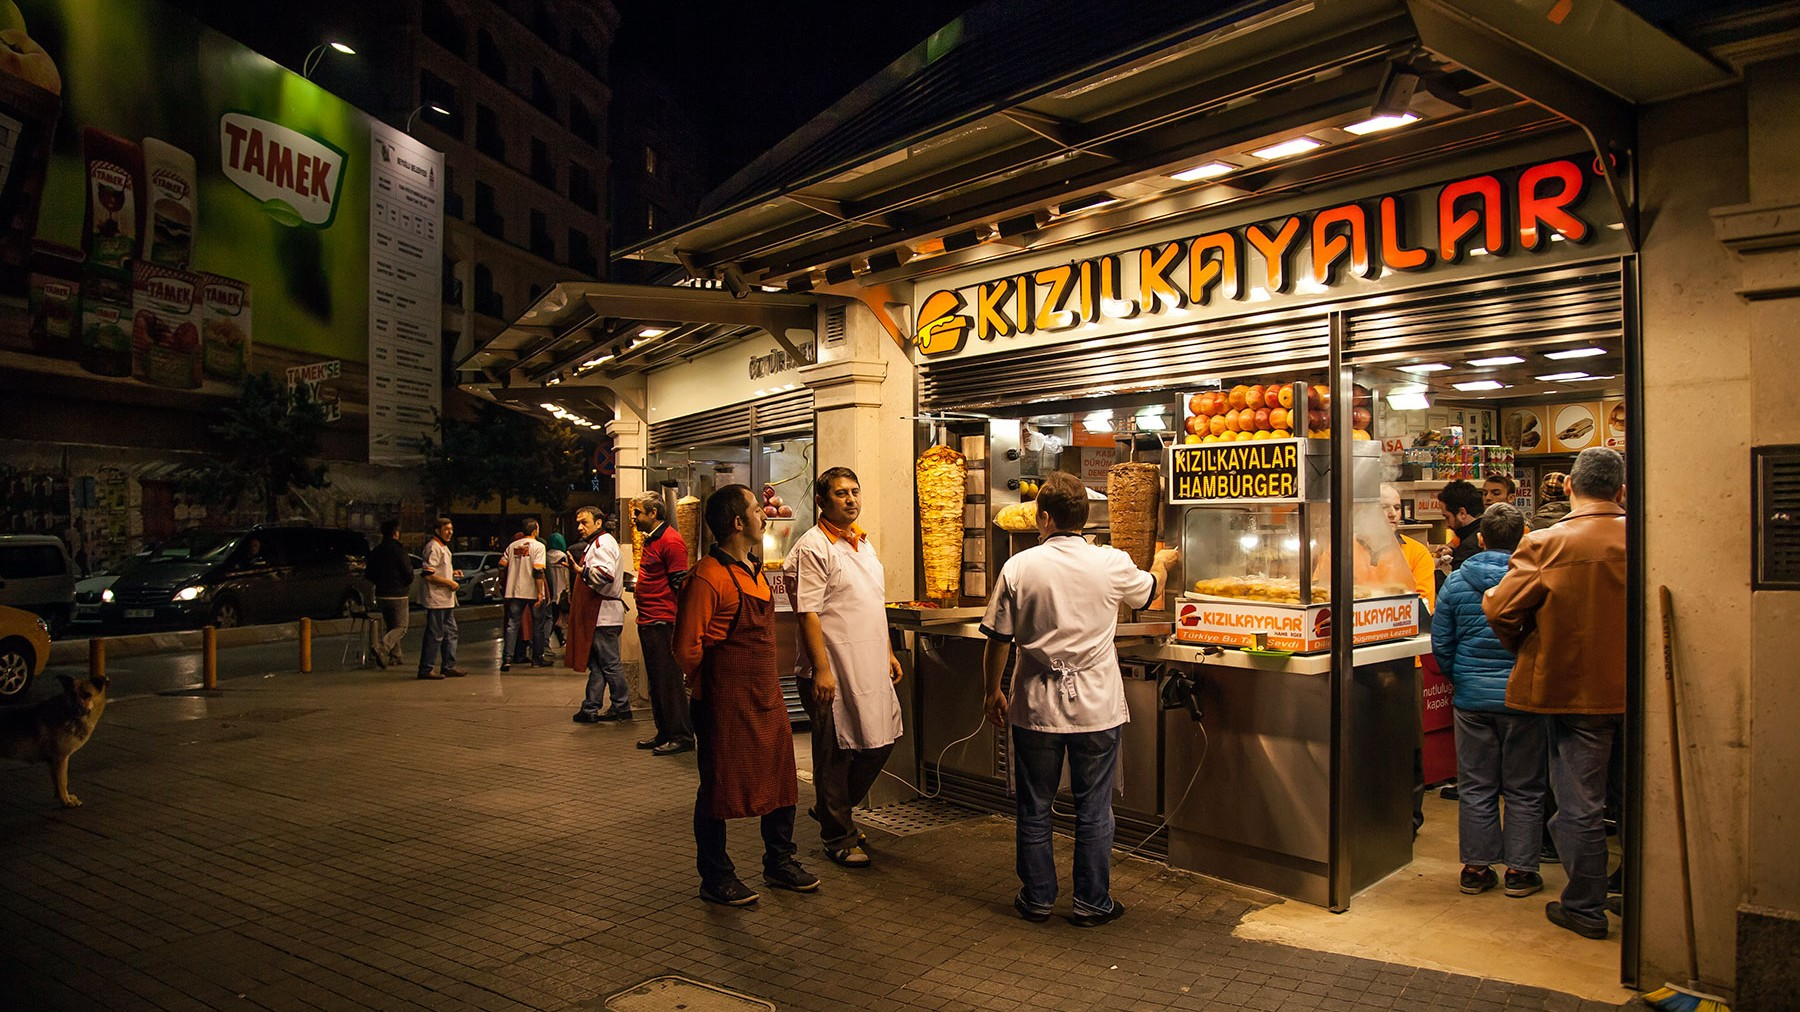 Kizilkaya-Islak-burger-joint-in-Taksim-square